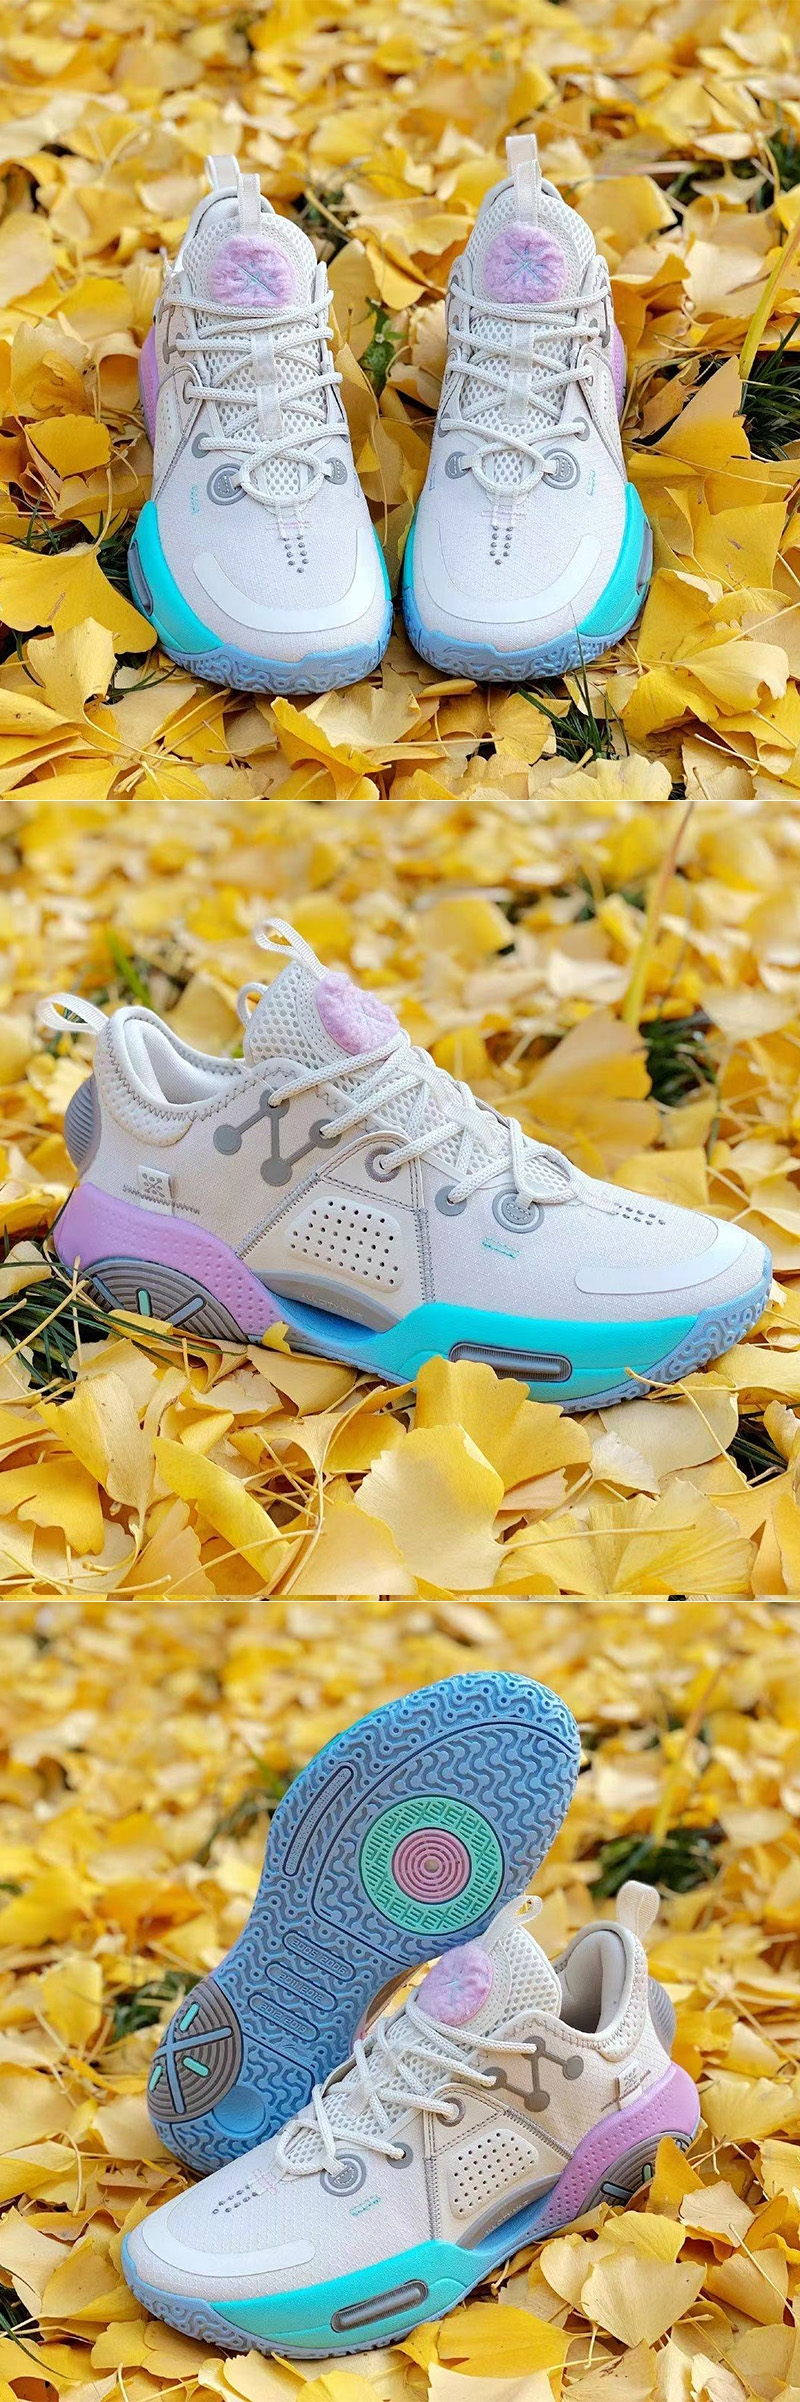 """Way of Wade 2020 ALL CITY 9 """"Cotton Candy"""" Basketball Sneakers"""